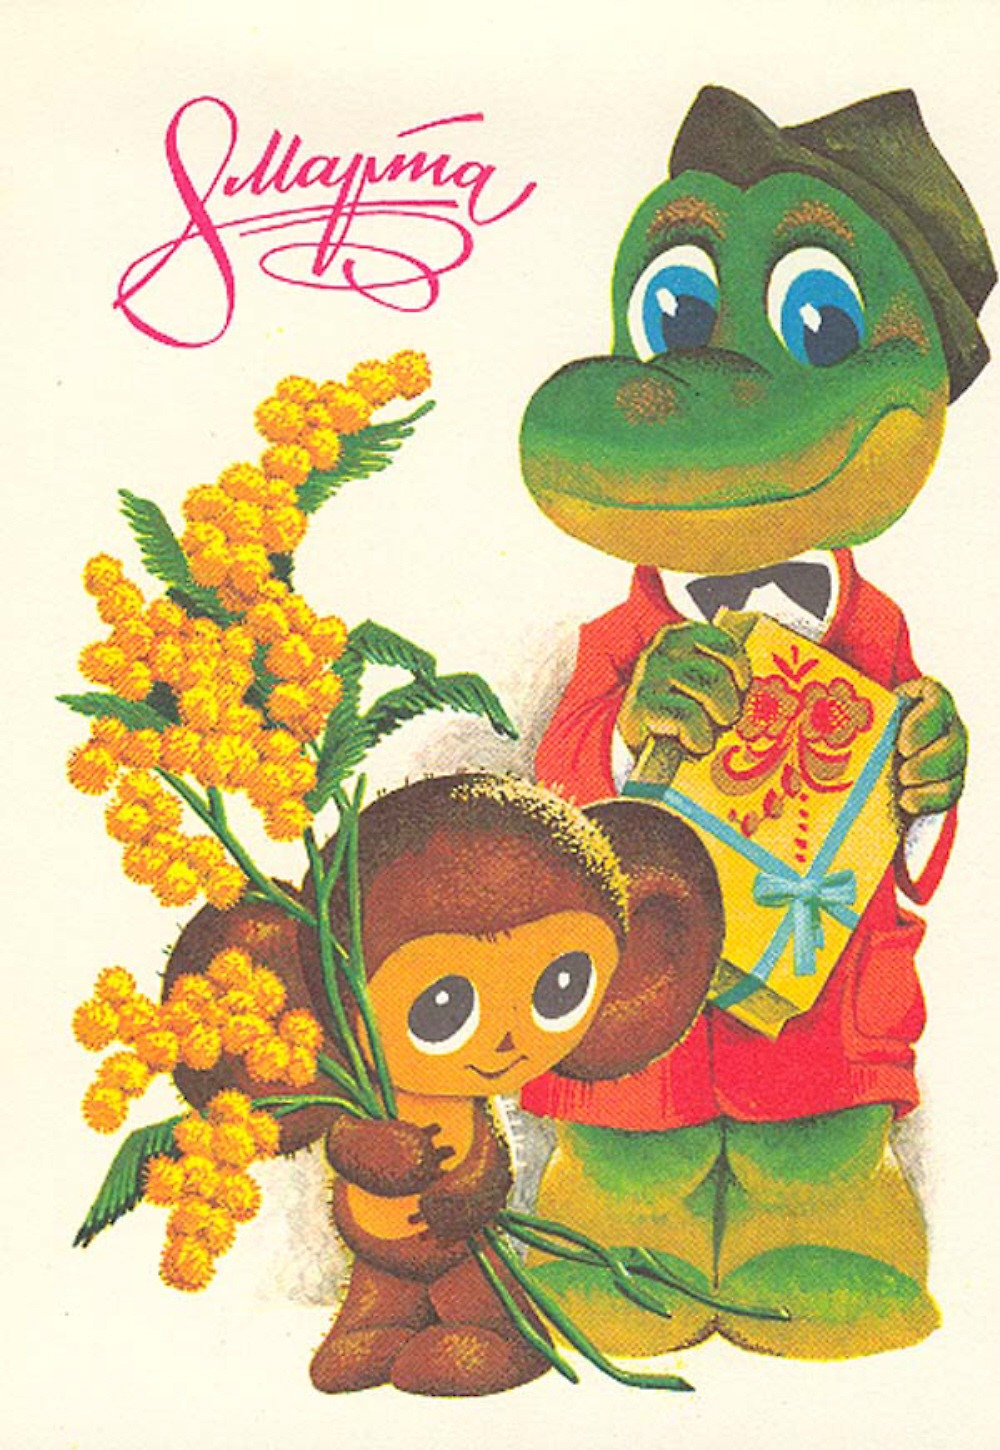 00 Gena and Cheburashka. 8 March holiday